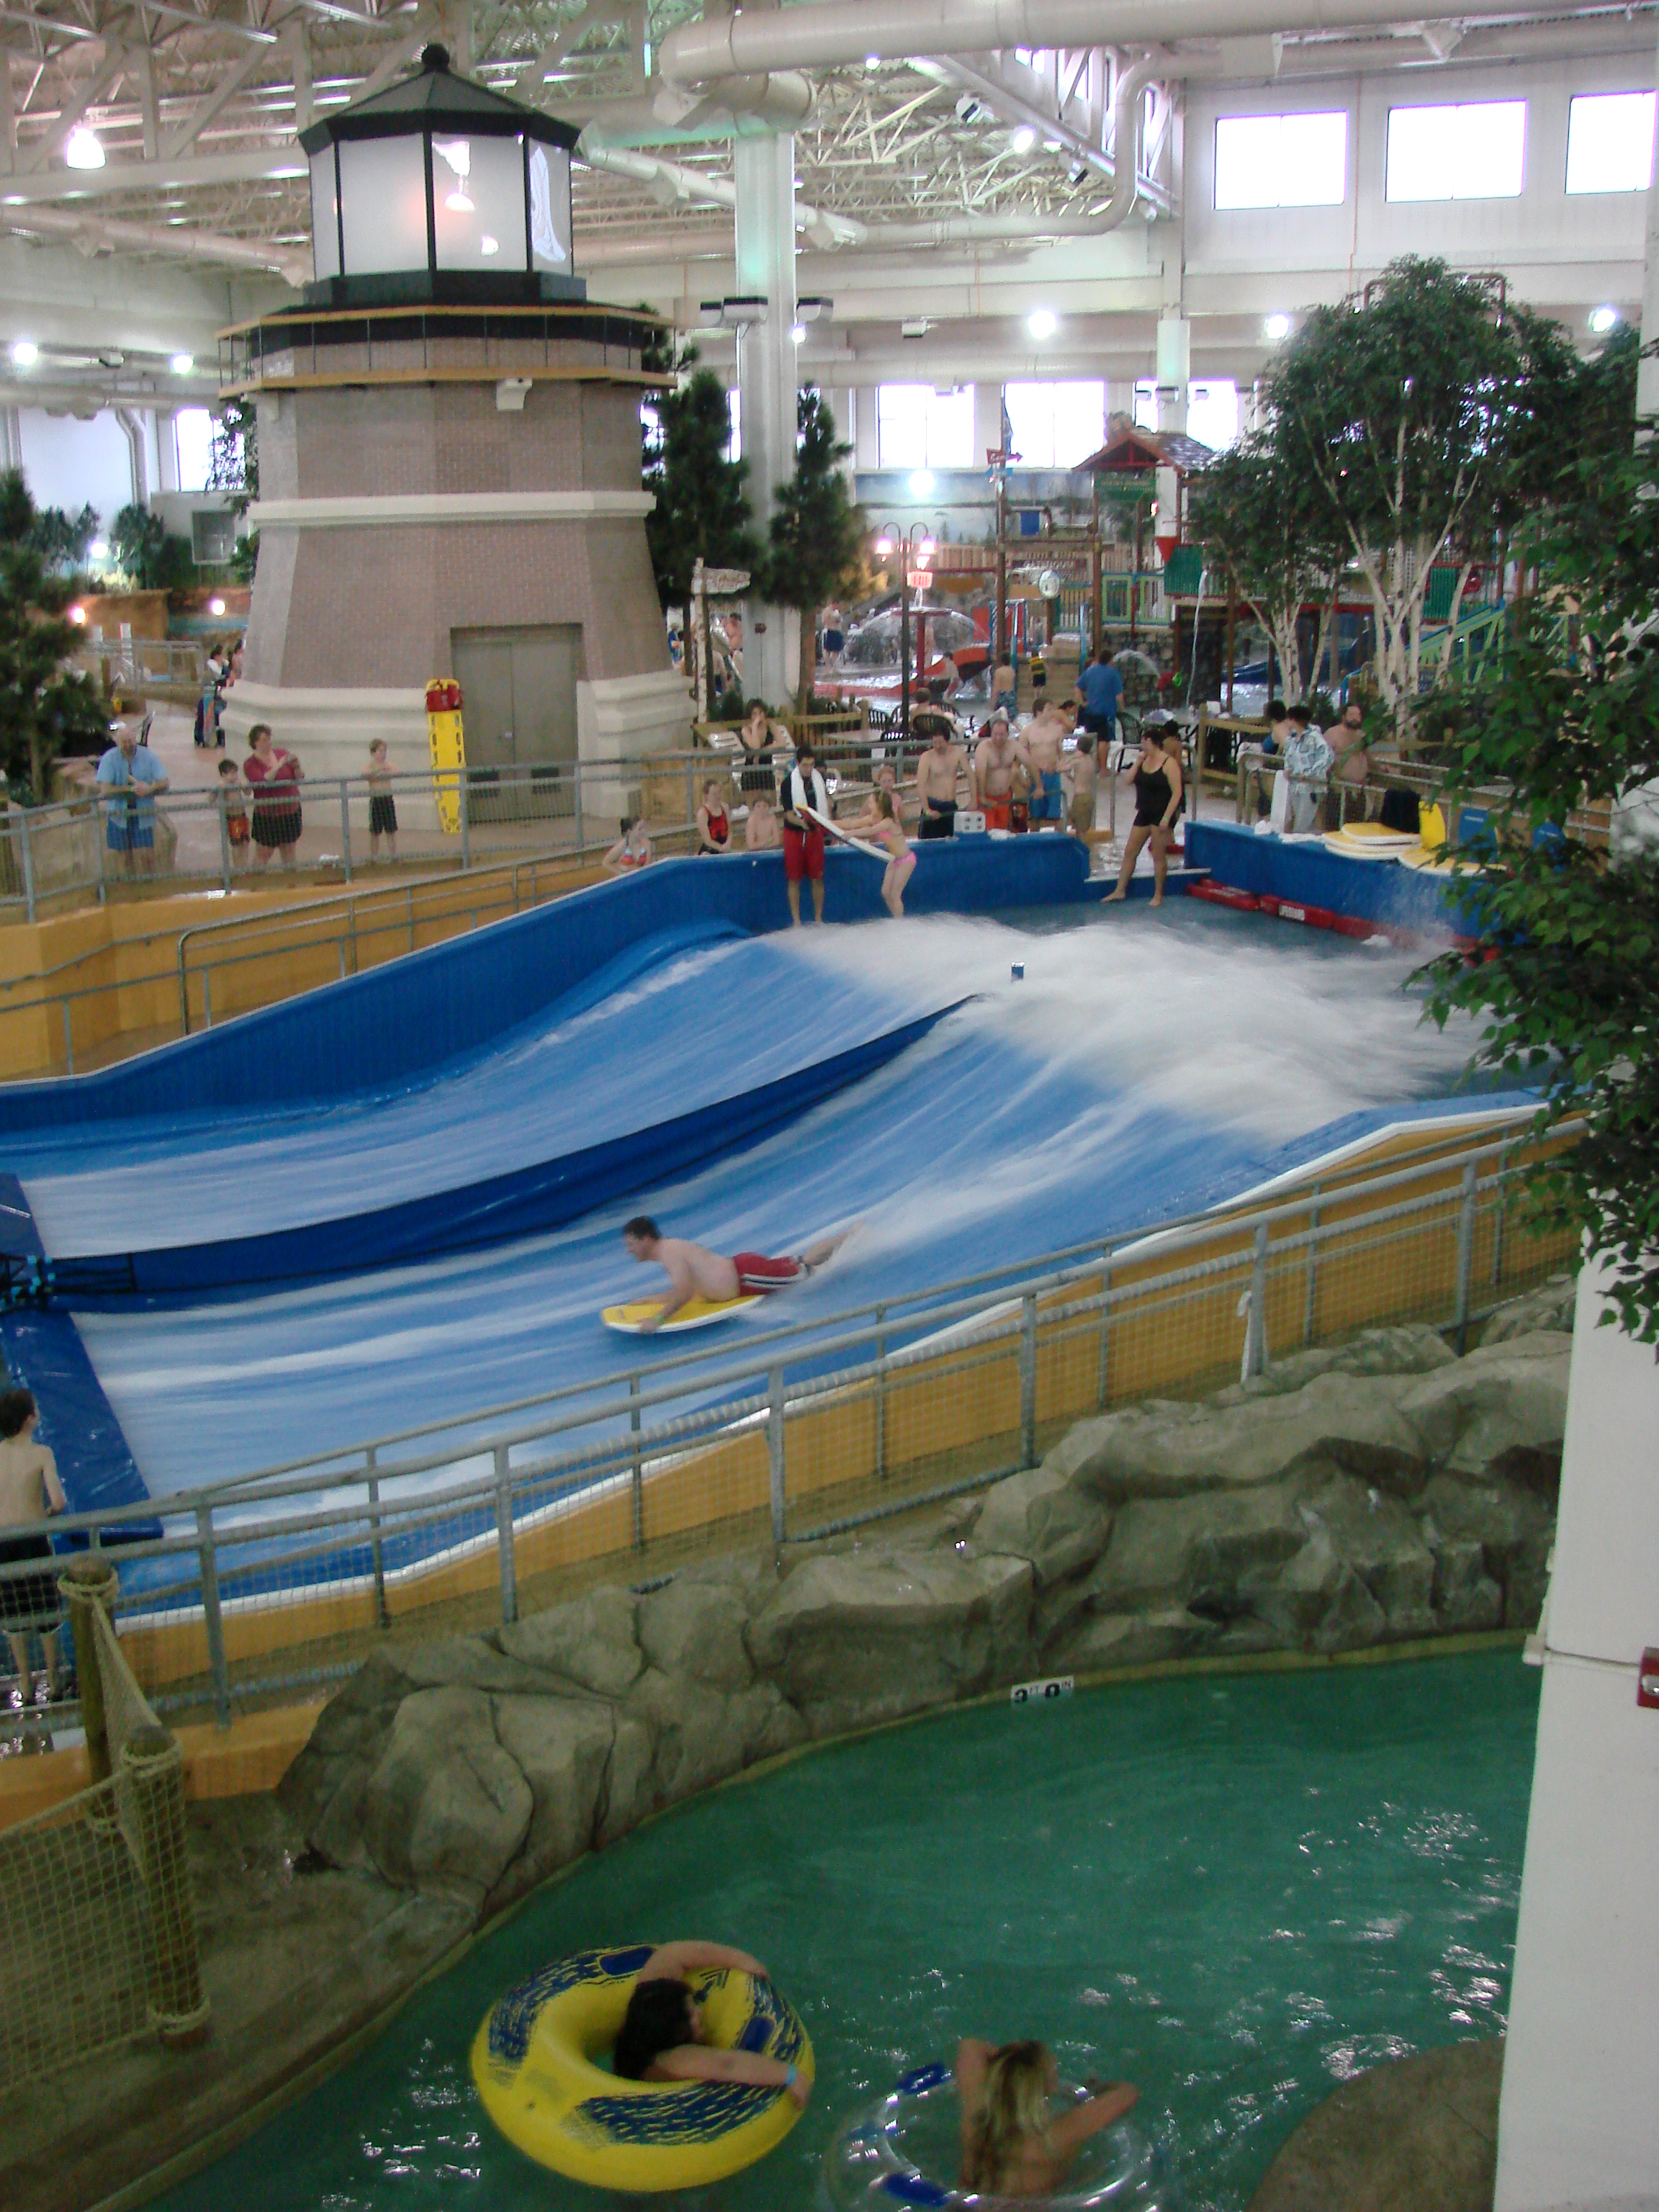 Surfing experience at  Waterpark of America in Bloomington, MN